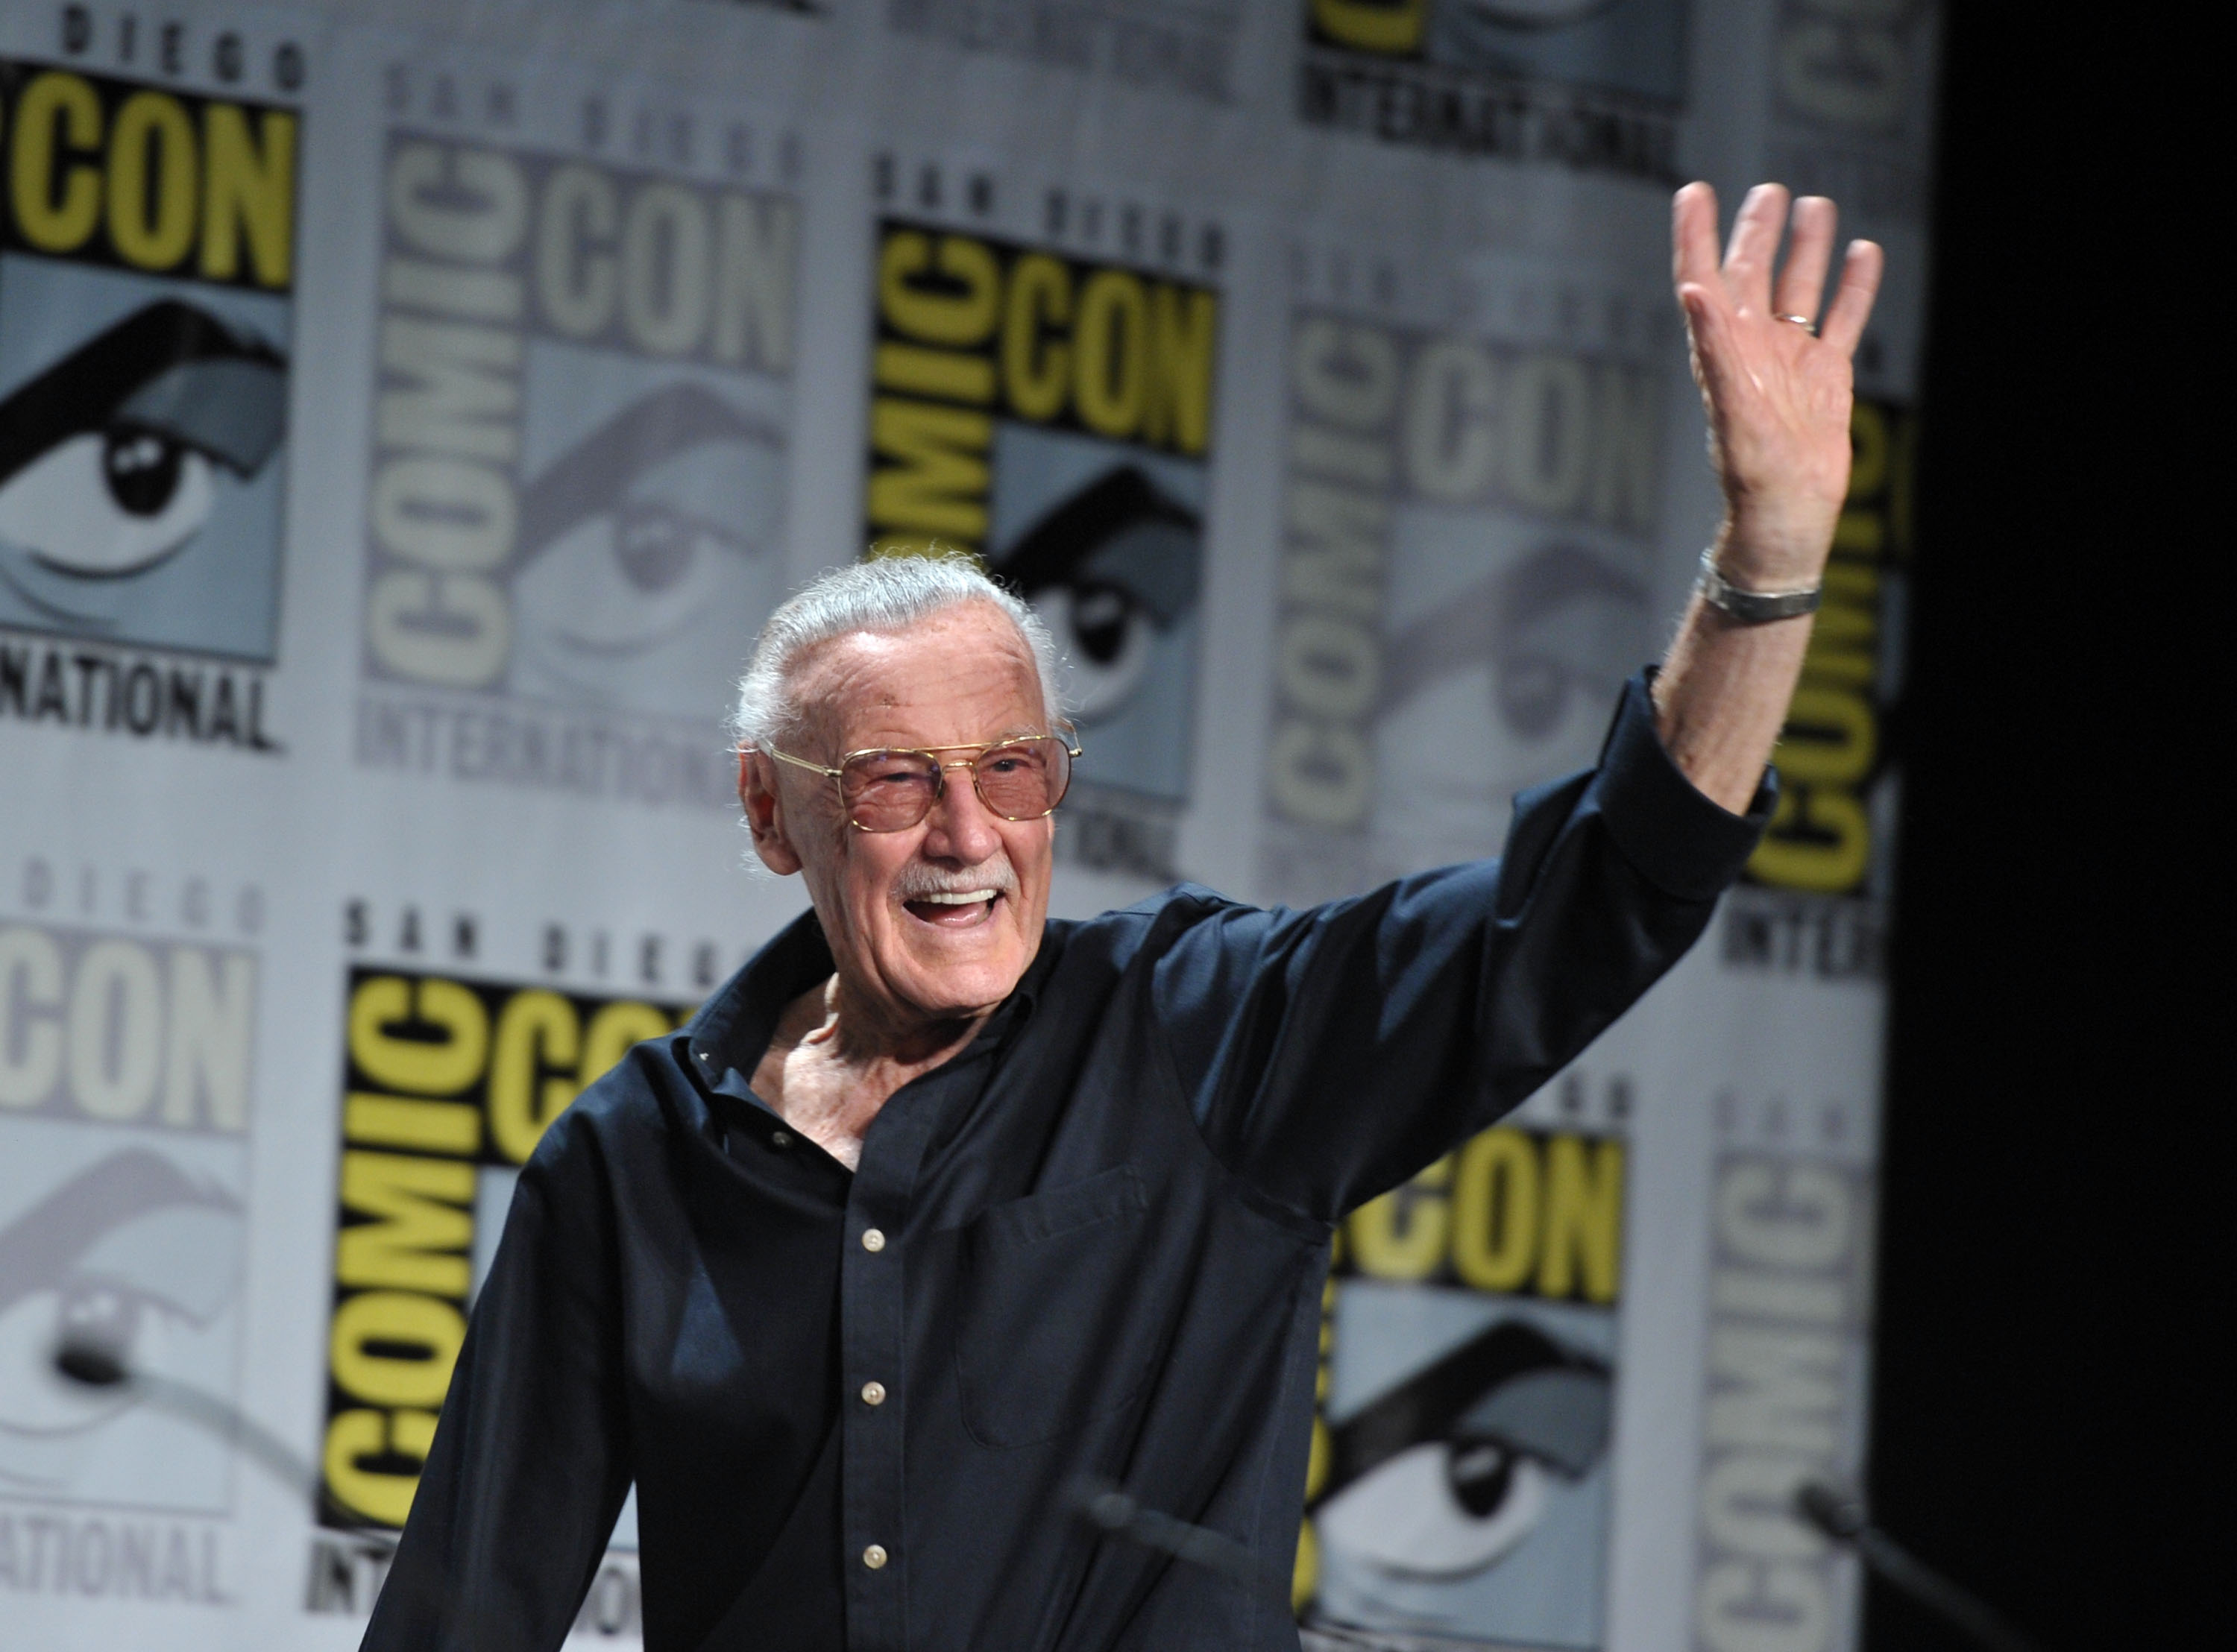 Stan Lee speaks at 'Blood Red Dragon' press conference at Comic-Con 2011